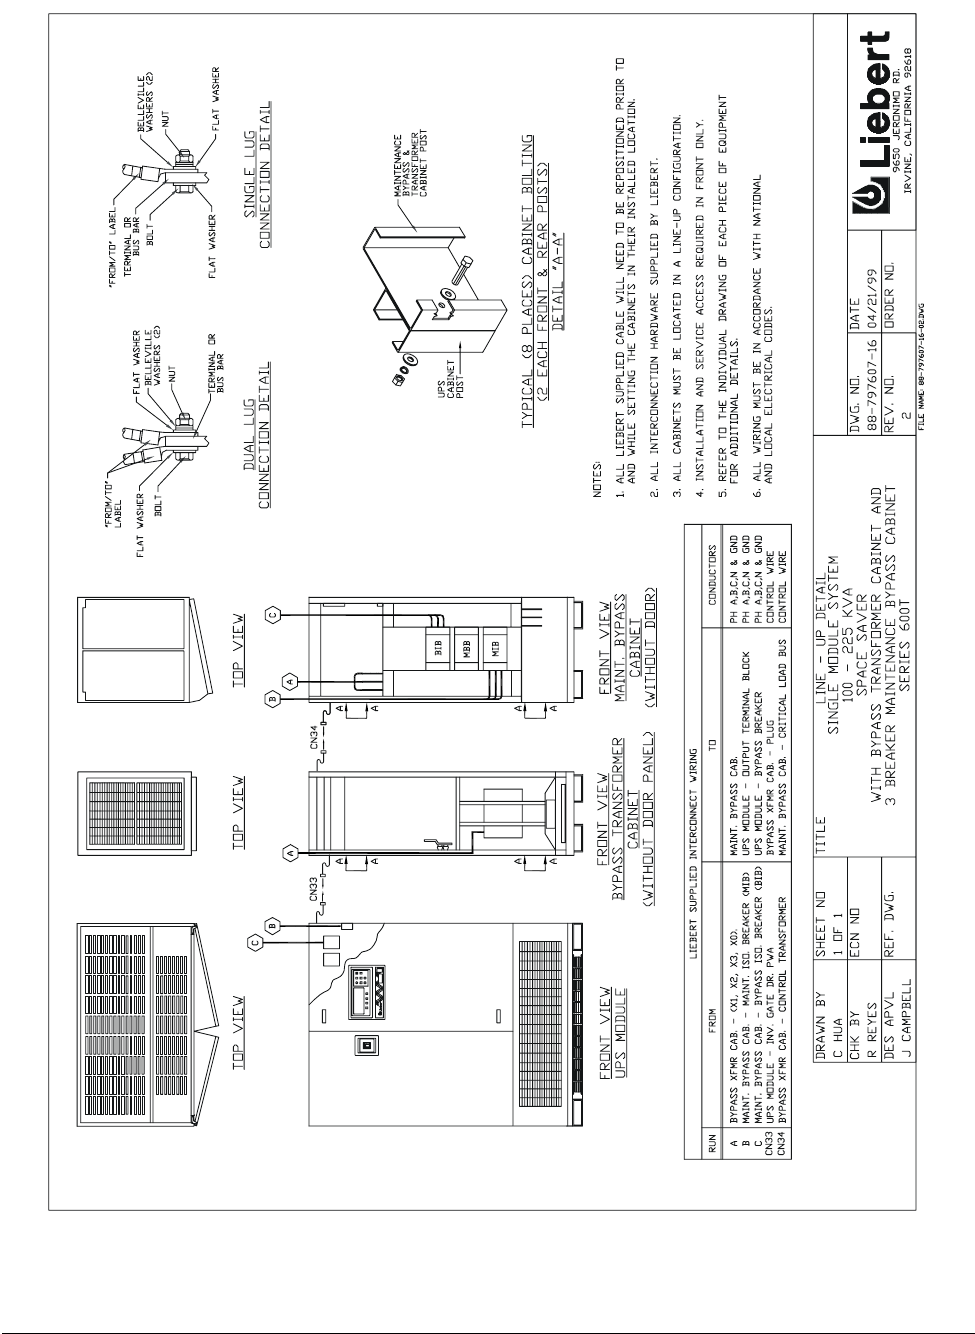 Ups Truck Loading Diagram Ats Circuit